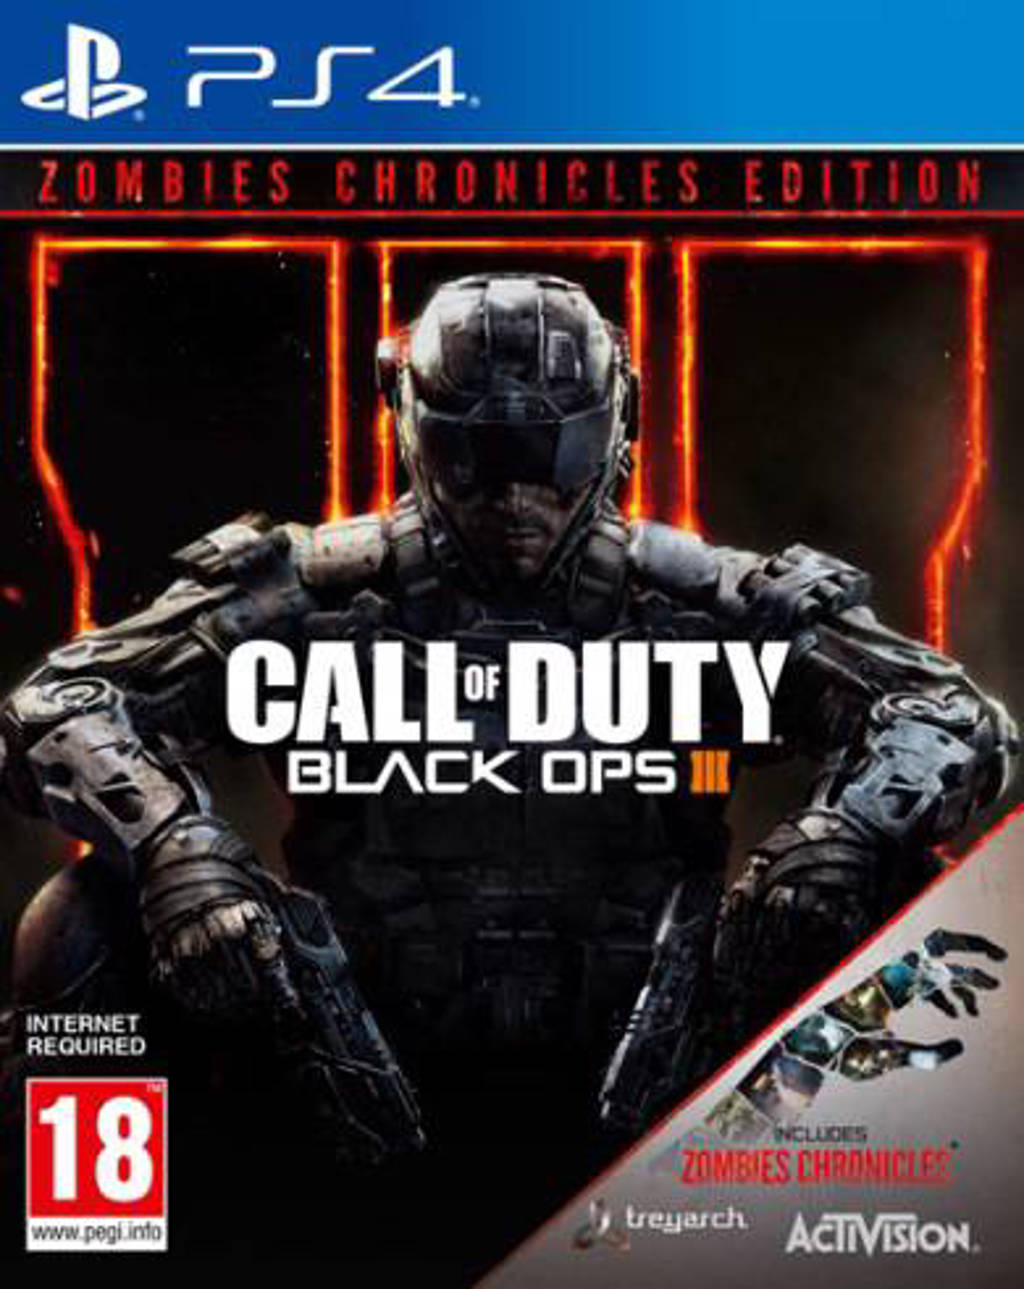 Call of duty – Black ops 3  (Zombie Chronicles) (PlayStation 4)